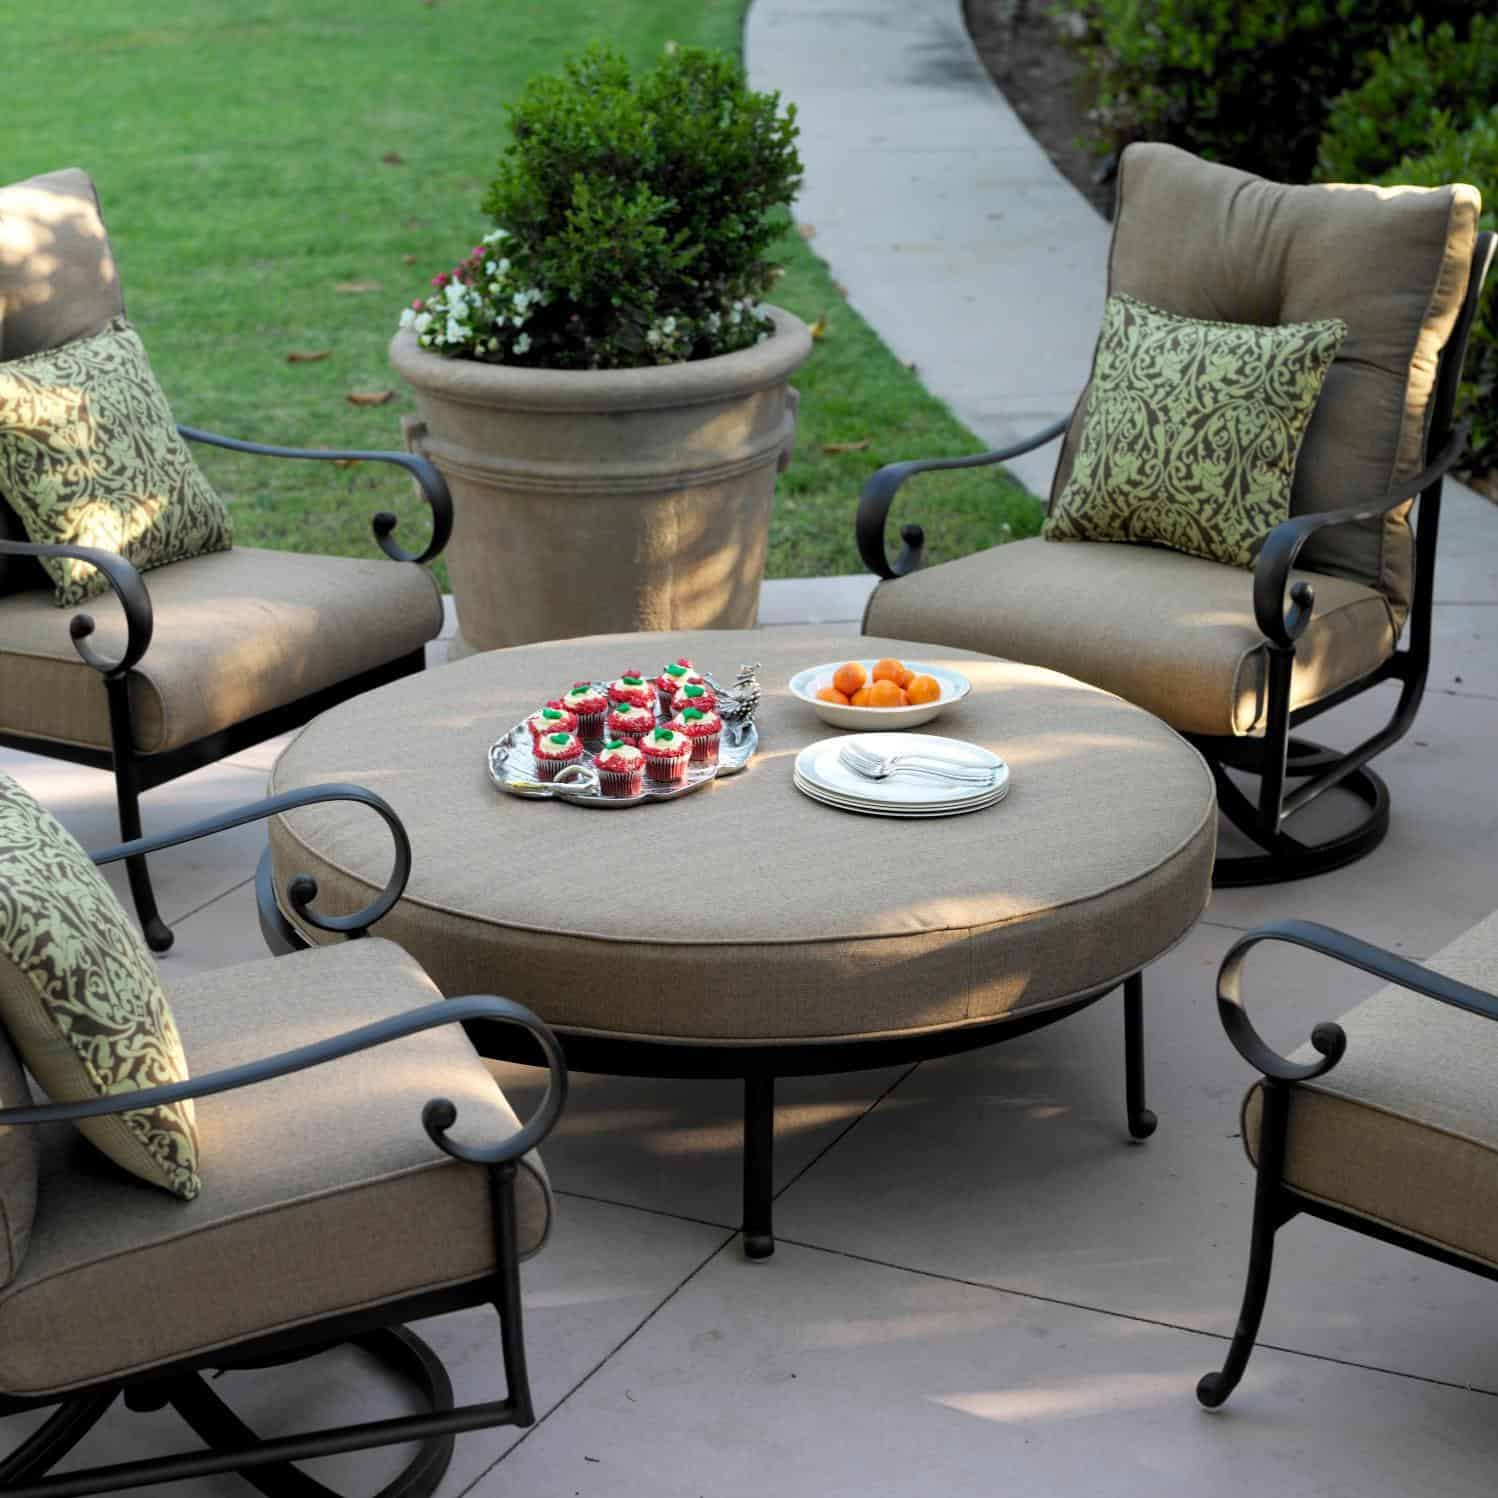 large ottoman How to decorate a small Patio   10 inspiring ideas